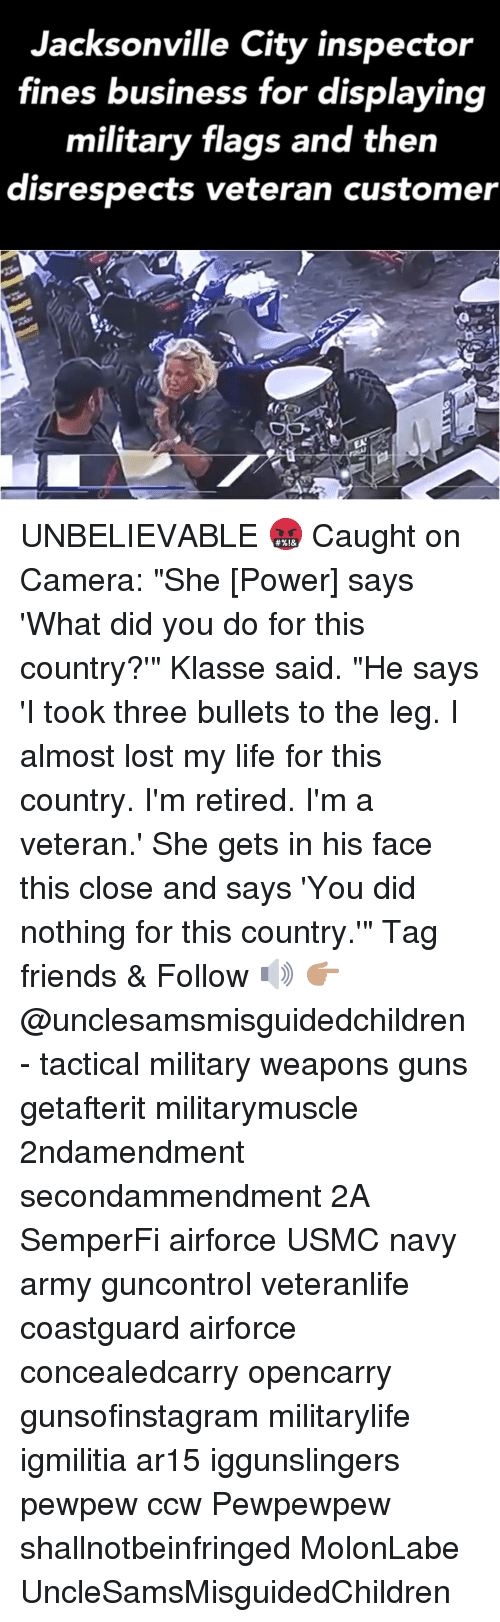 """Klasse: Jacksonville City inspector  fines business for displaying  military flags and then  disrespects veteran customer UNBELIEVABLE 🤬 Caught on Camera: """"She [Power] says 'What did you do for this country?'"""" Klasse said. """"He says 'I took three bullets to the leg. I almost lost my life for this country. I'm retired. I'm a veteran.' She gets in his face this close and says 'You did nothing for this country.'"""" Tag friends & Follow 🔊 👉🏽 @unclesamsmisguidedchildren - tactical military weapons guns getafterit militarymuscle 2ndamendment secondammendment 2A SemperFi airforce USMC navy army guncontrol veteranlife coastguard airforce concealedcarry opencarry gunsofinstagram militarylife igmilitia ar15 iggunslingers pewpew ccw Pewpewpew shallnotbeinfringed MolonLabe UncleSamsMisguidedChildren"""